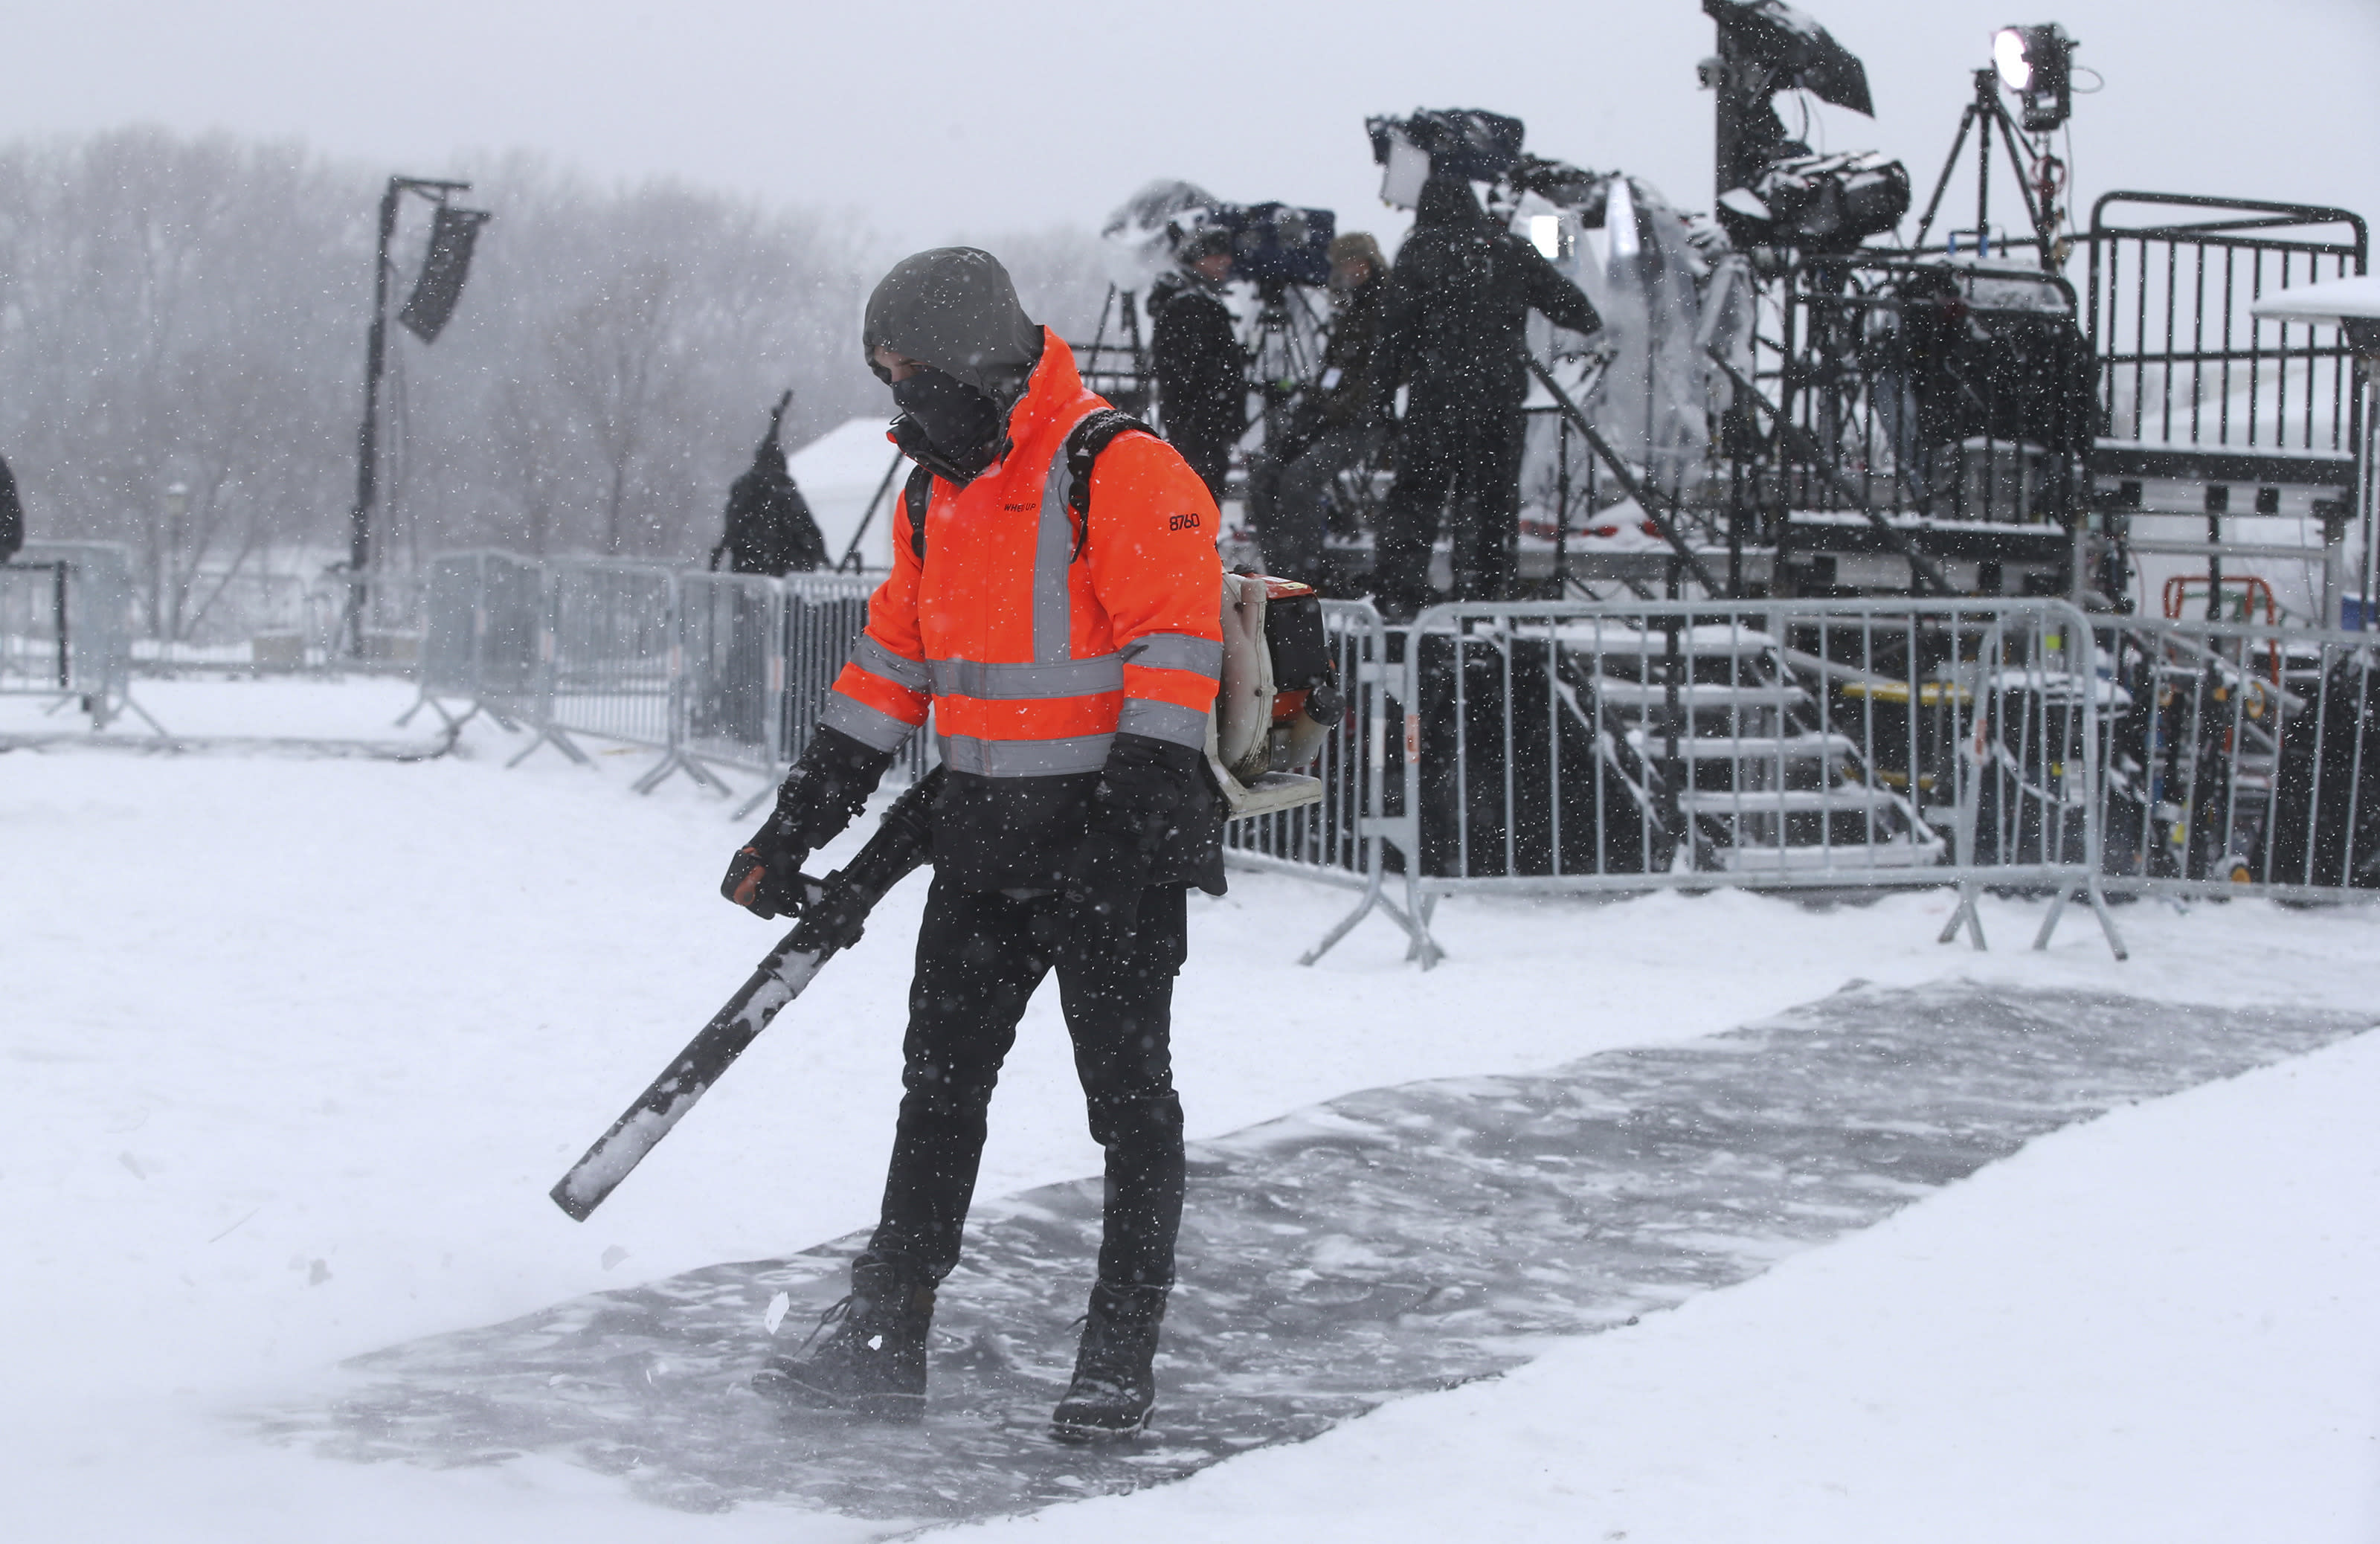 Snow continues to fall as a worker clears snow off a runner and media members arrange equipment on a riser prior to Democratic Sen. Amy Klobuchar's announcement of her decision in the race for president at a rally Sunday, Feb. 10, 2019, at Boom Island Park in Minneapolis. (AP Photo/Jim Mone)